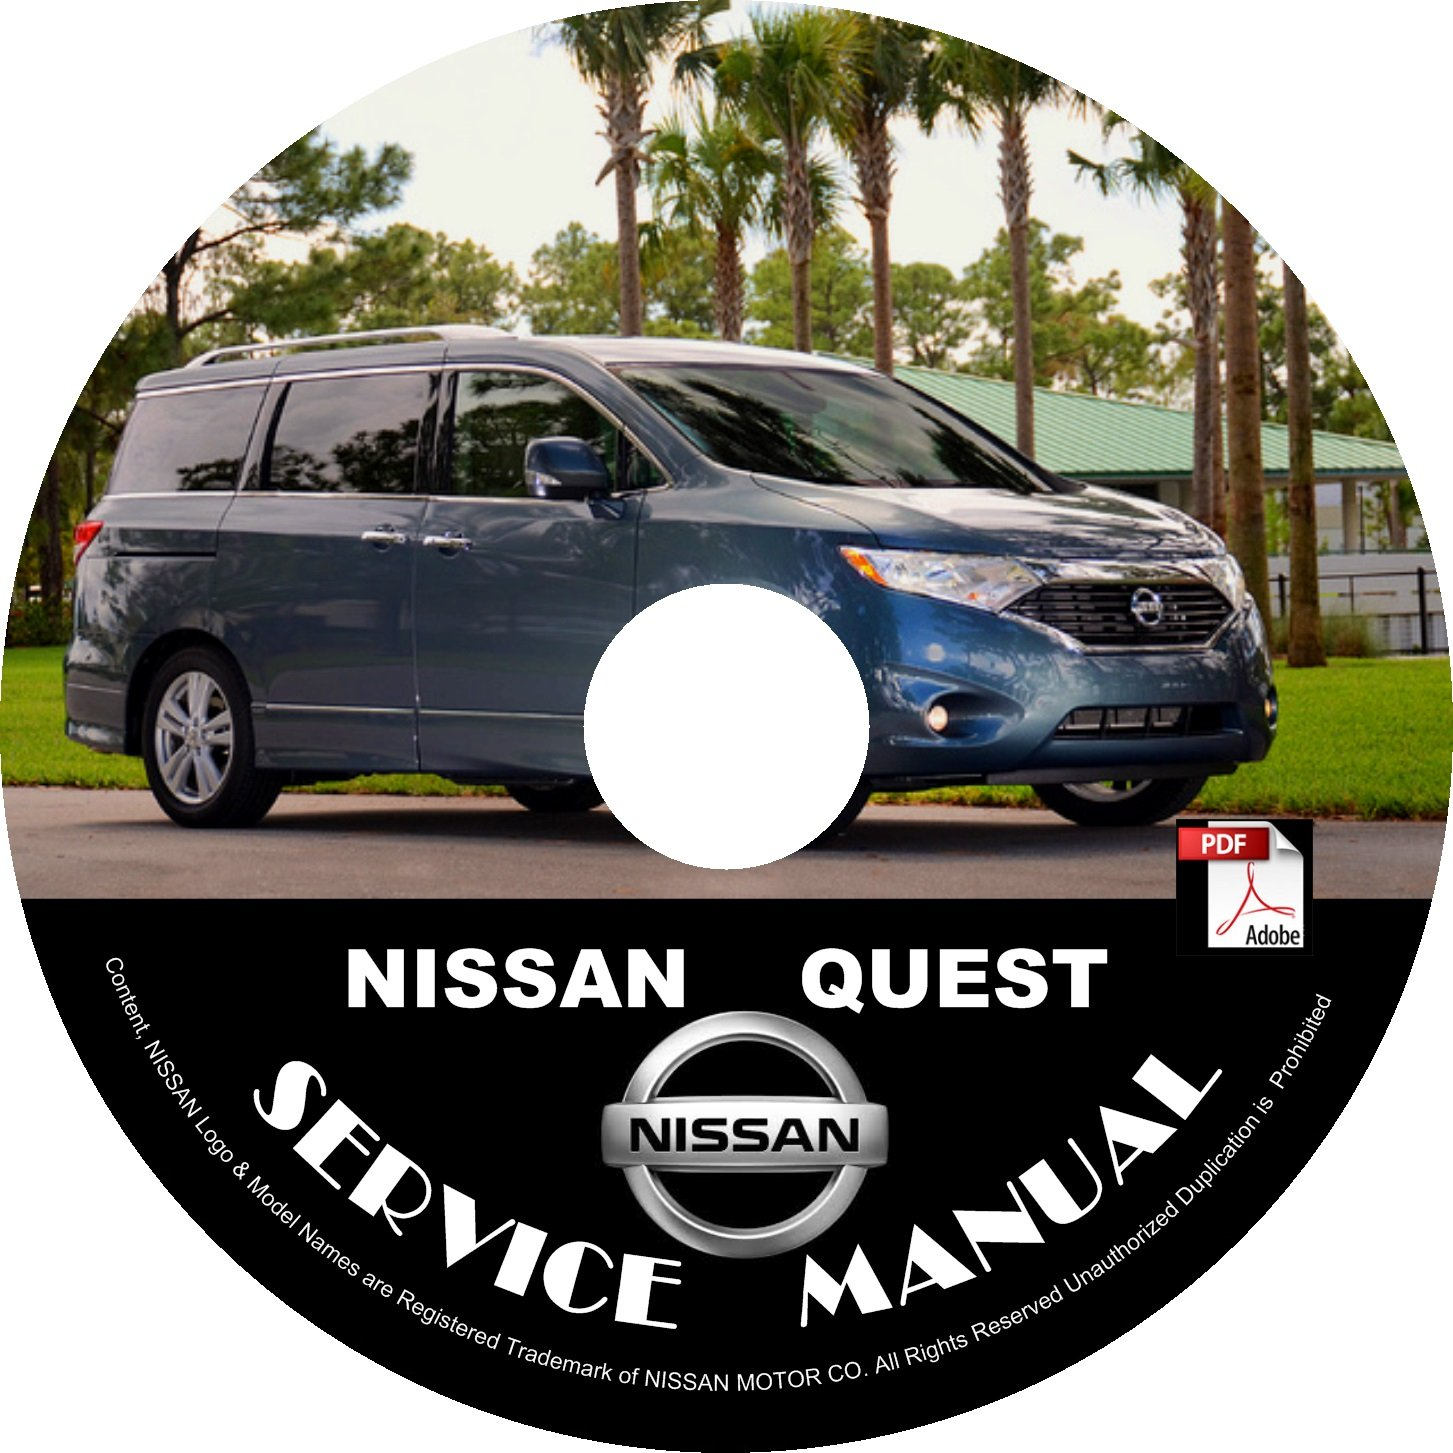 2011 Nissan Quest Minivan Factory Service Repair Shop Manual on CD Fix Rebuilt